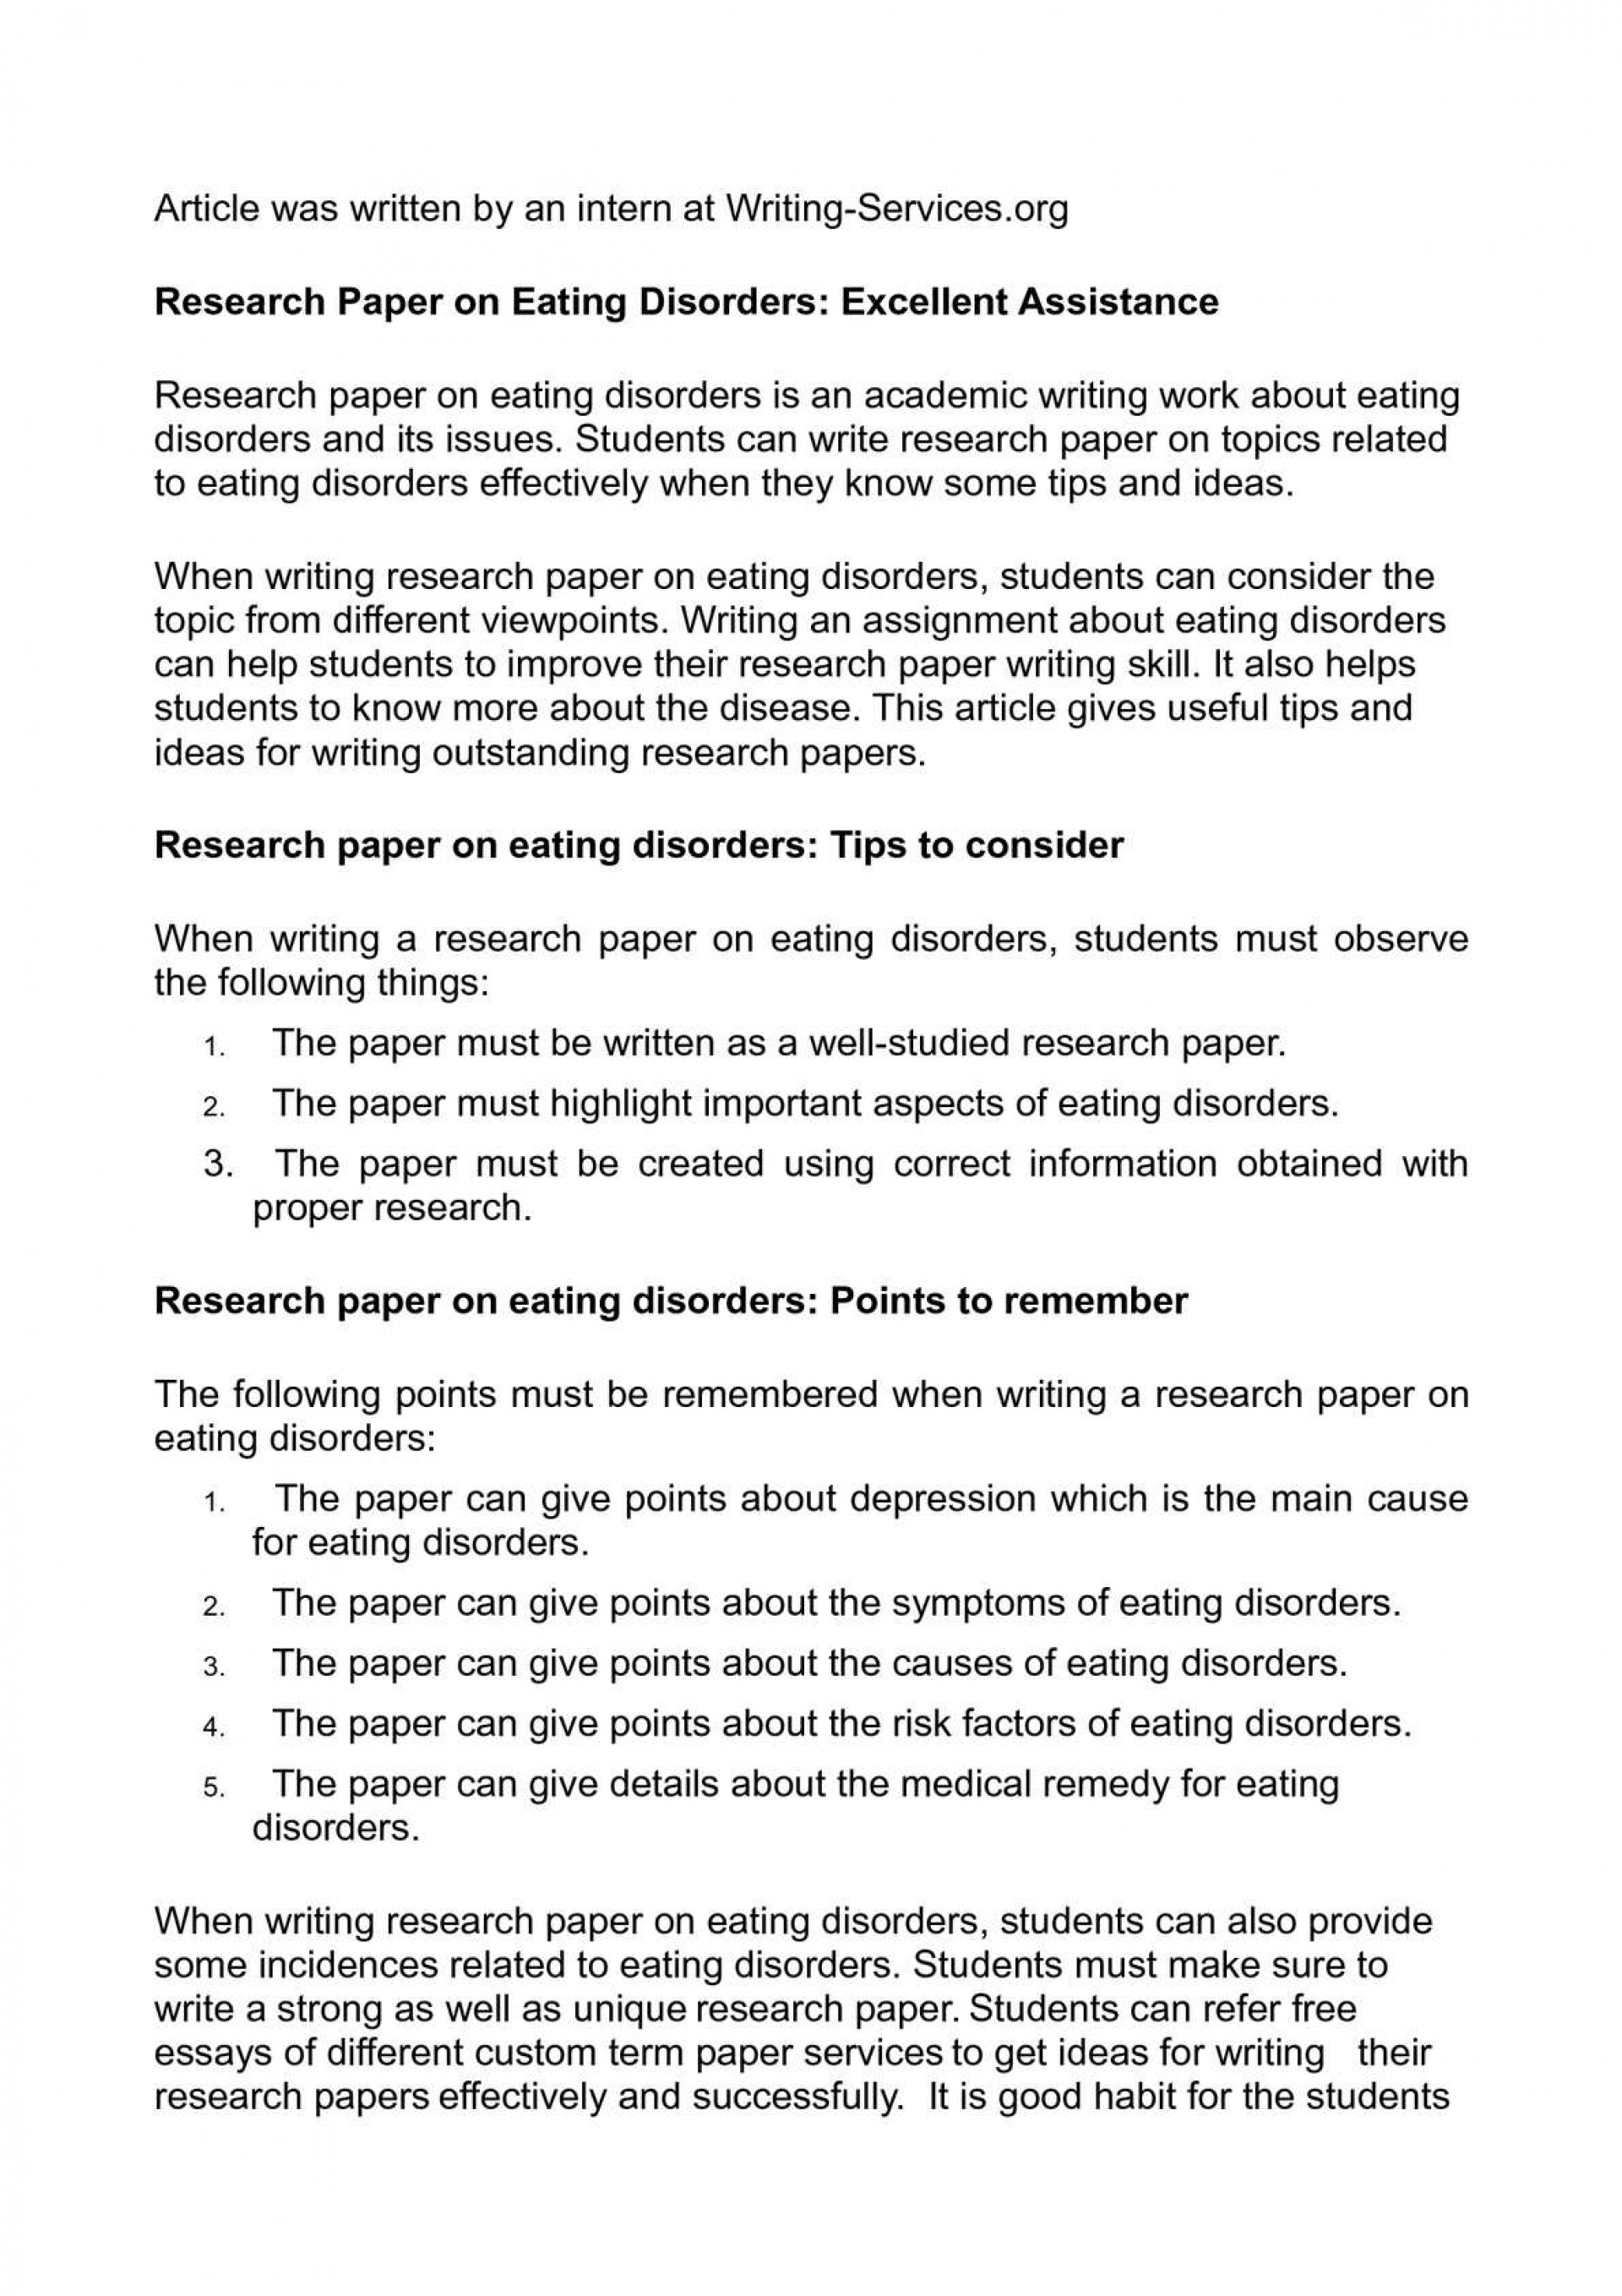 001 Research Paper P1 Free Papers On Eating Wondrous Disorders 1920